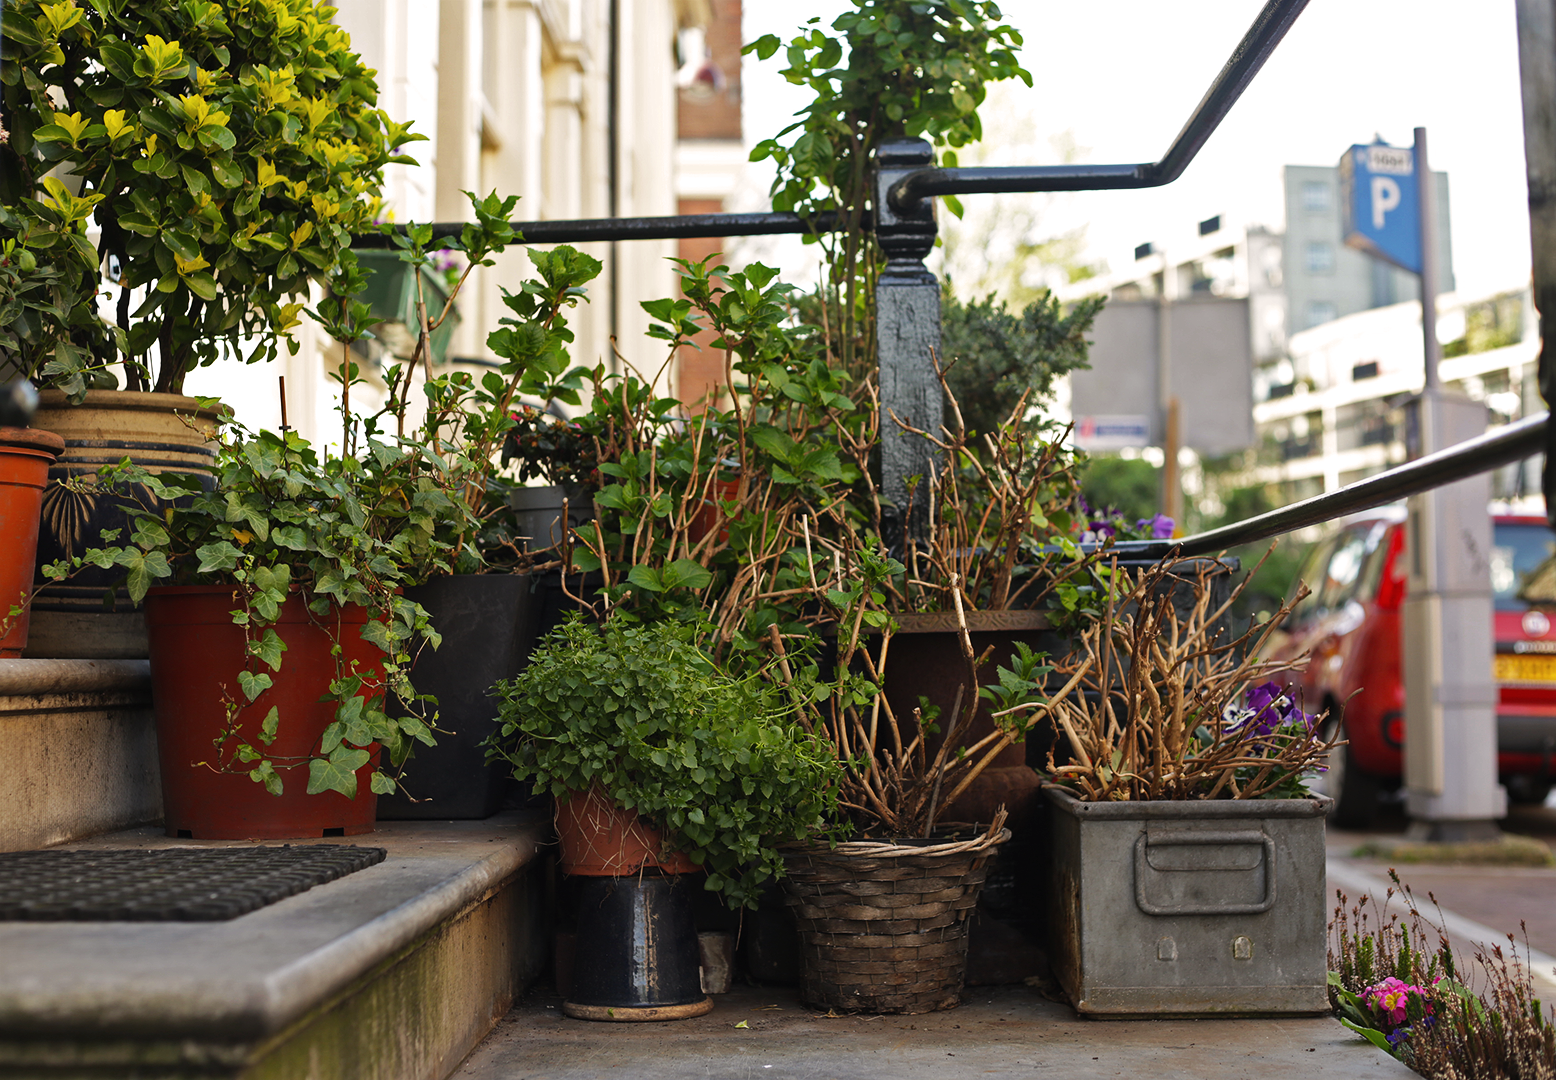 Doorstep planter boxes are a common sight in Amsterdam, adding beauty and nature to the busy city.